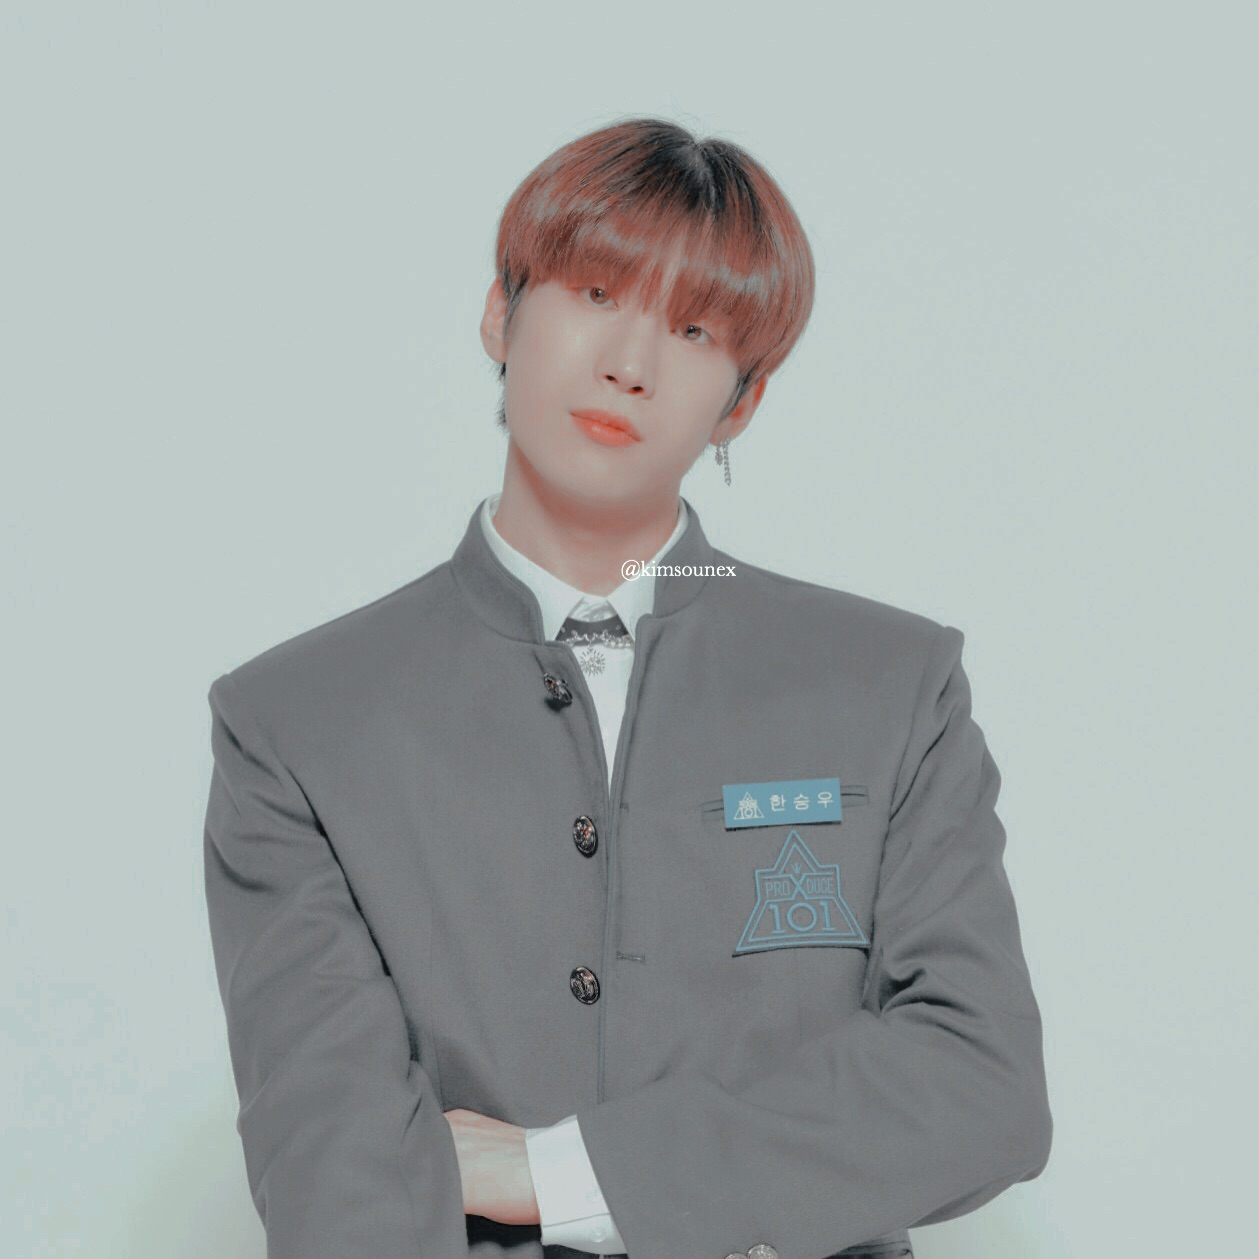 seungwoo and producex101 image